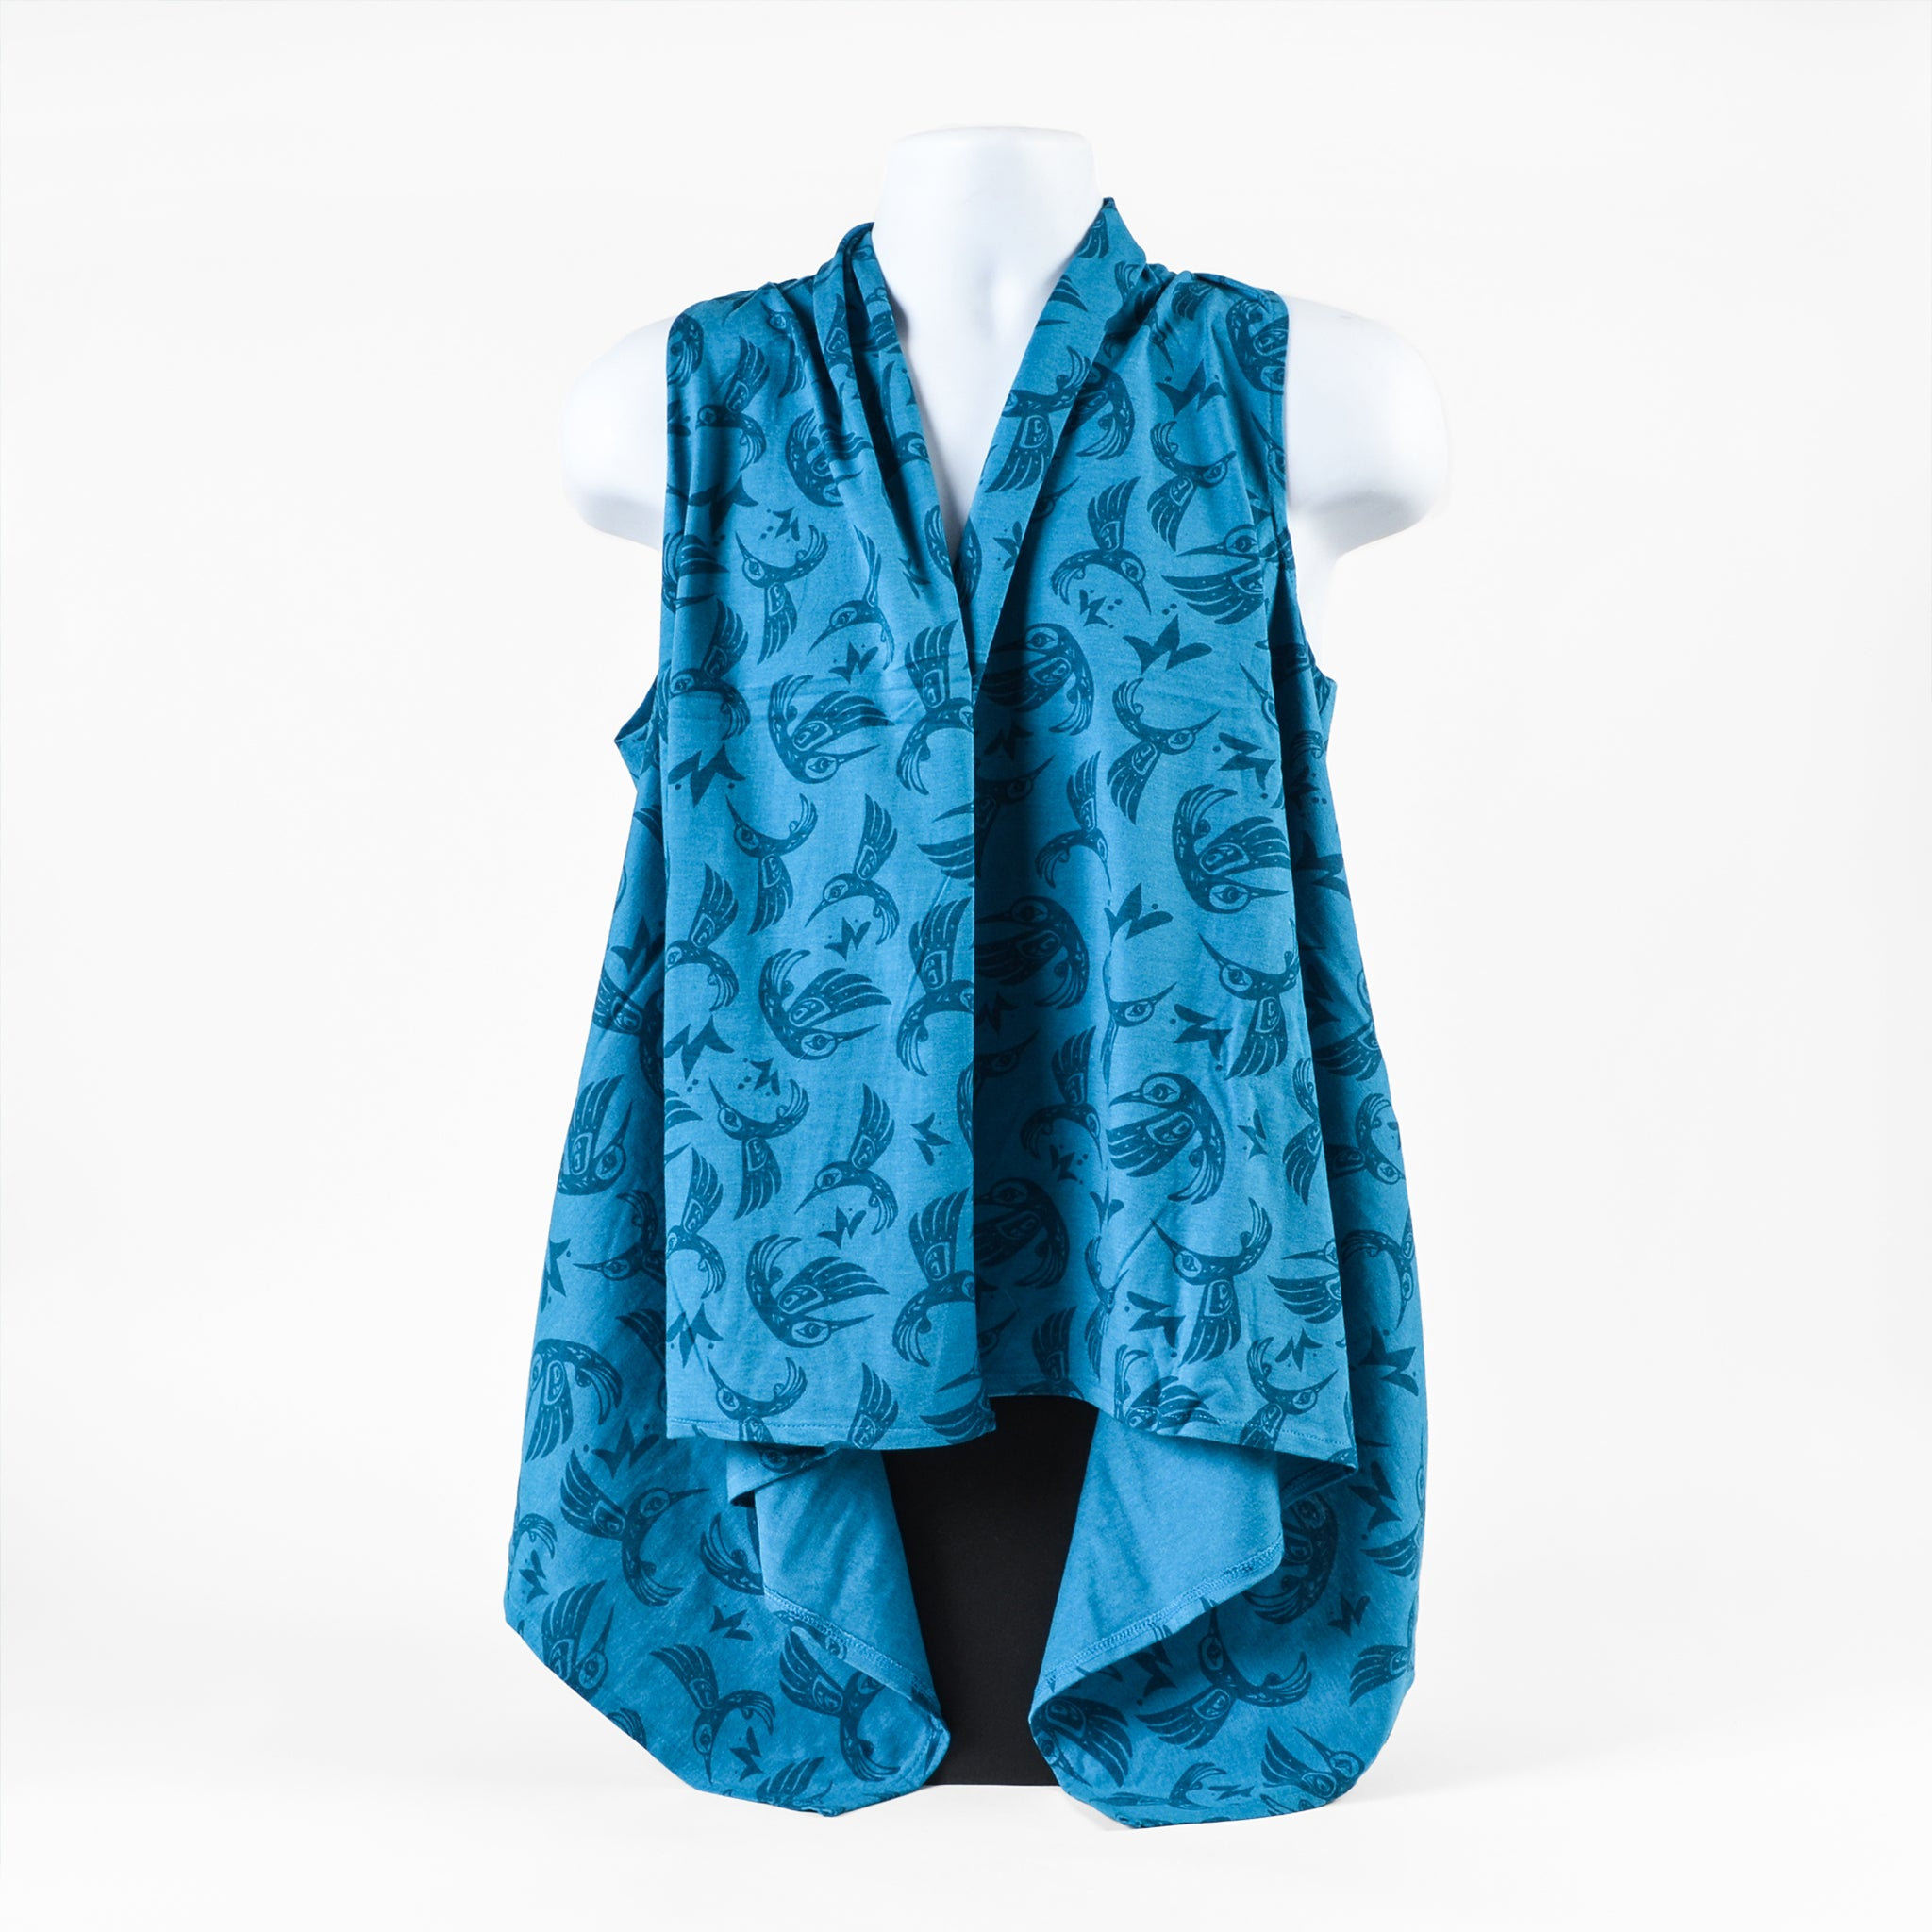 All Over Print Vest by Bill Helin, Tsimshian